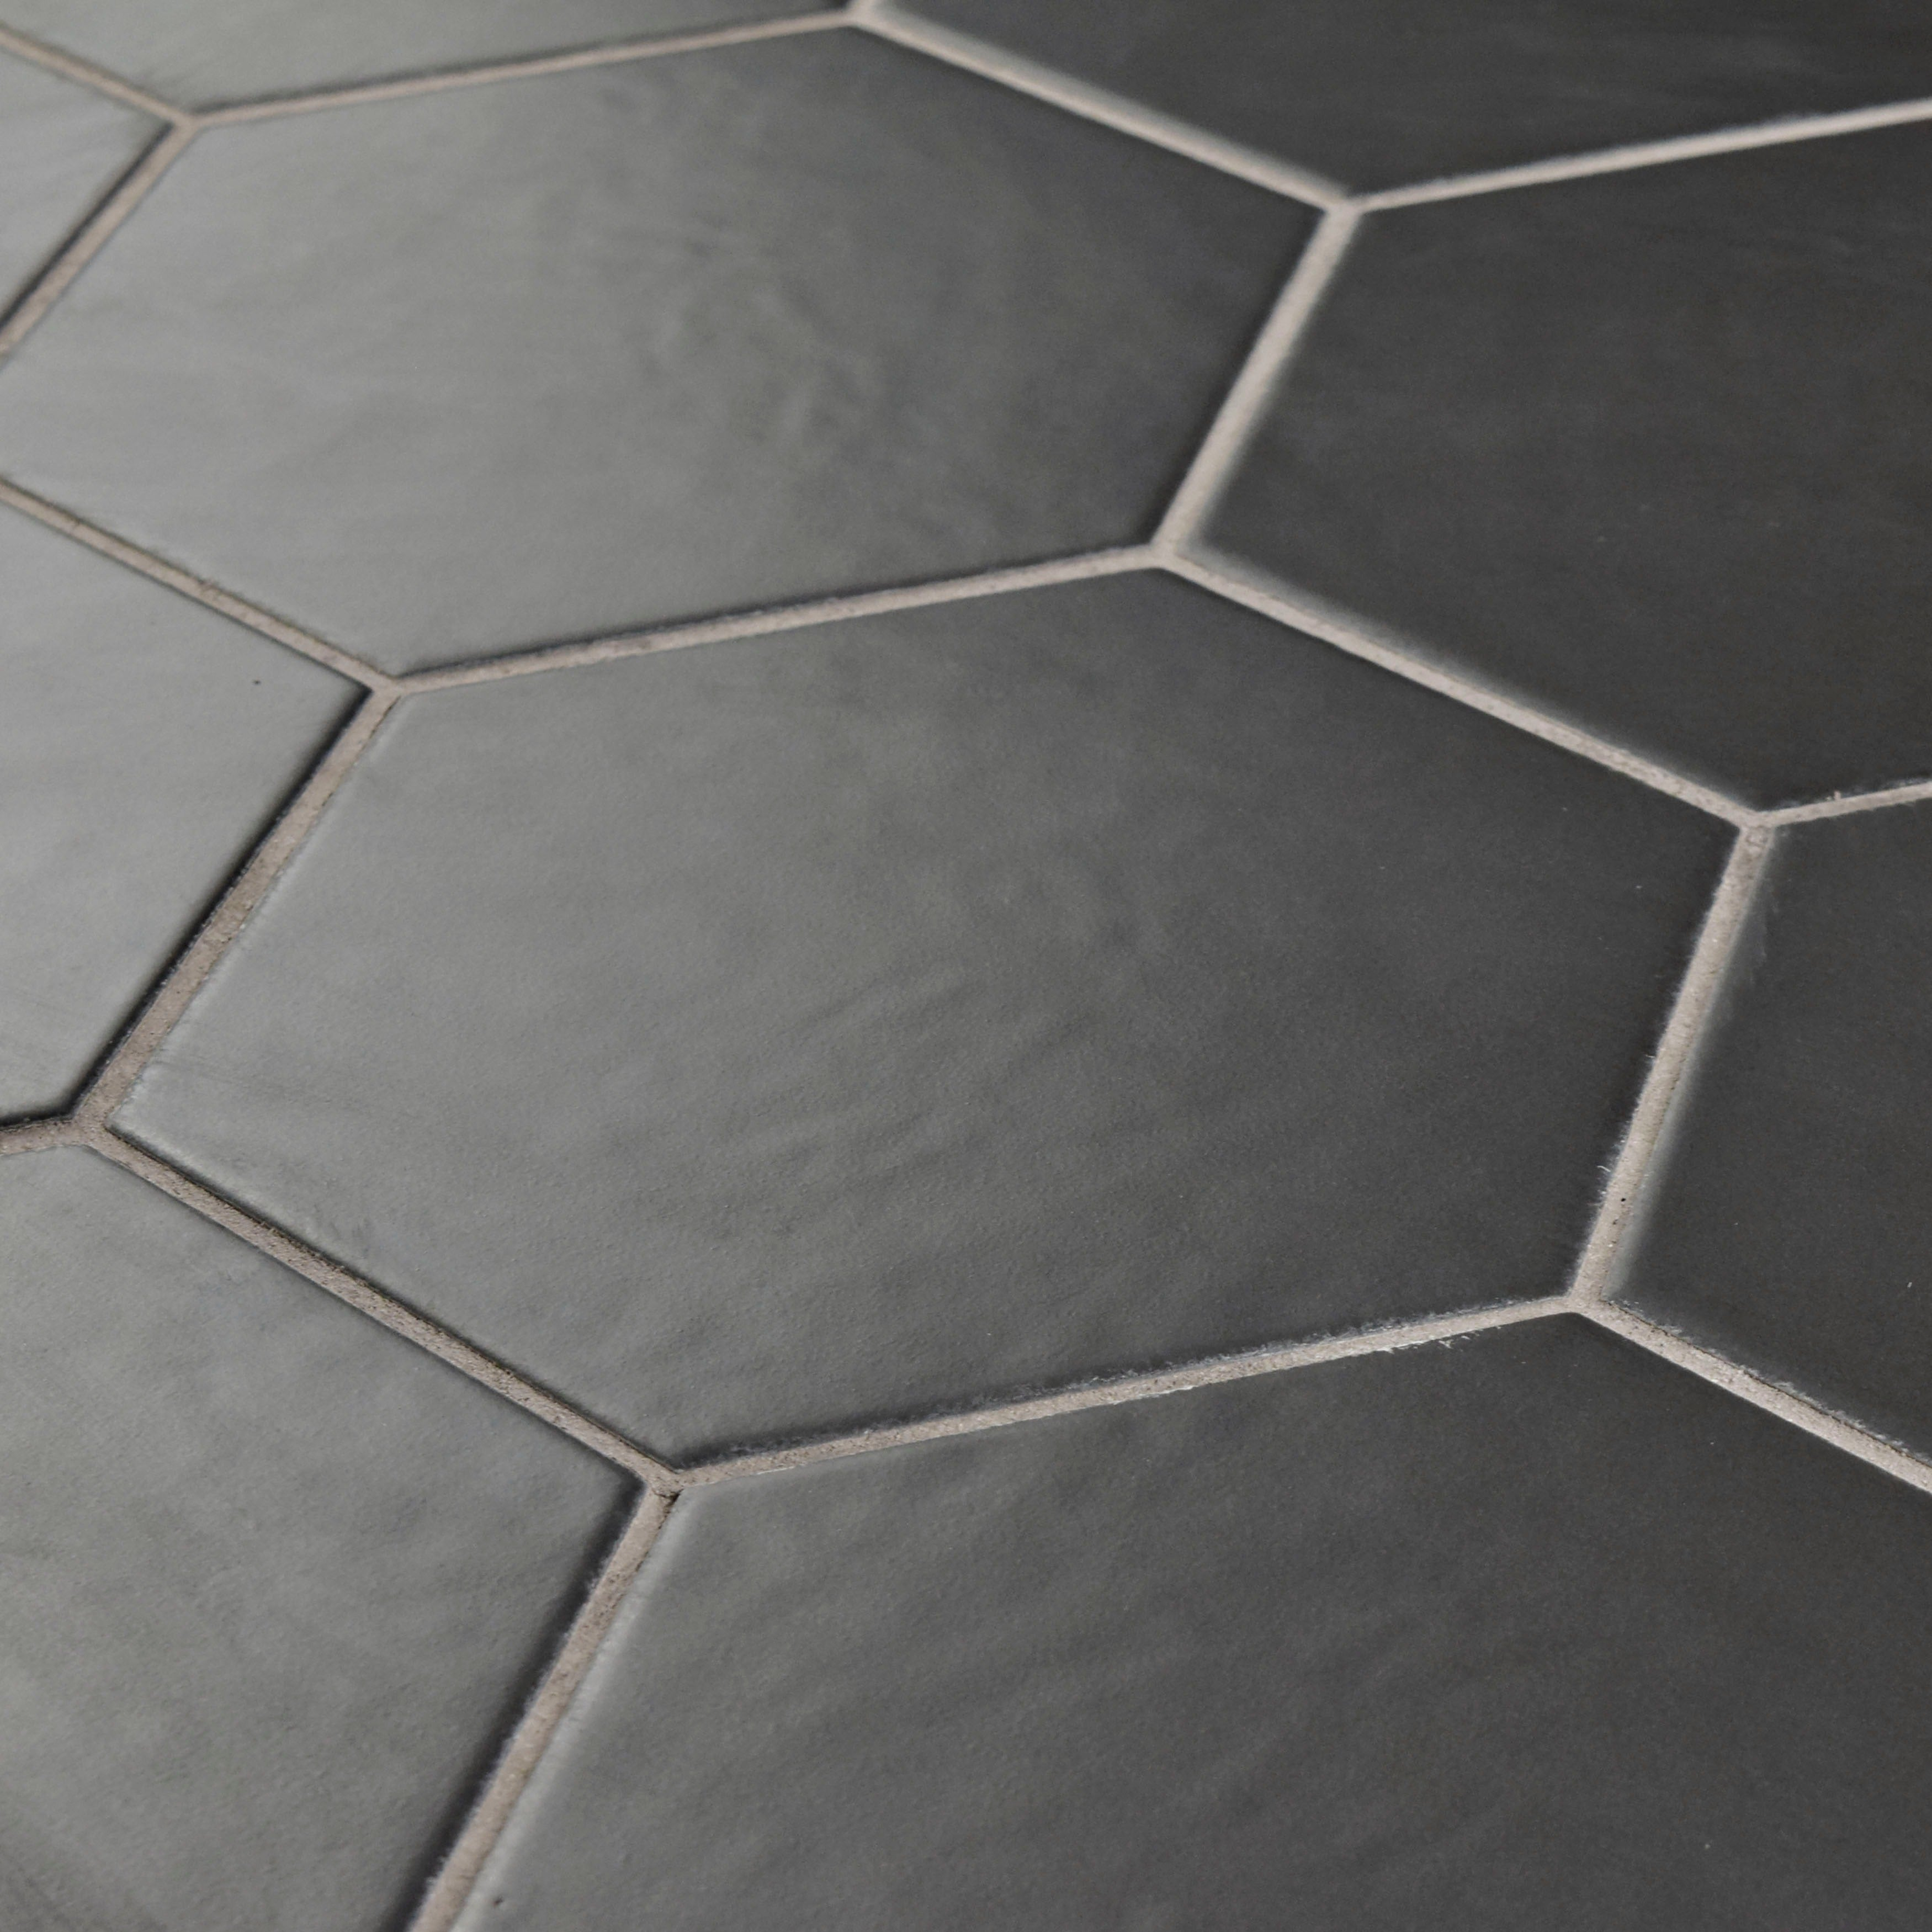 Somertile matte black porcelain 7x8 inch hextile floor and wall tile somertile matte black porcelain 7x8 inch hextile floor and wall tile case of 14 free shipping on orders over 45 overstock 15742538 dailygadgetfo Image collections